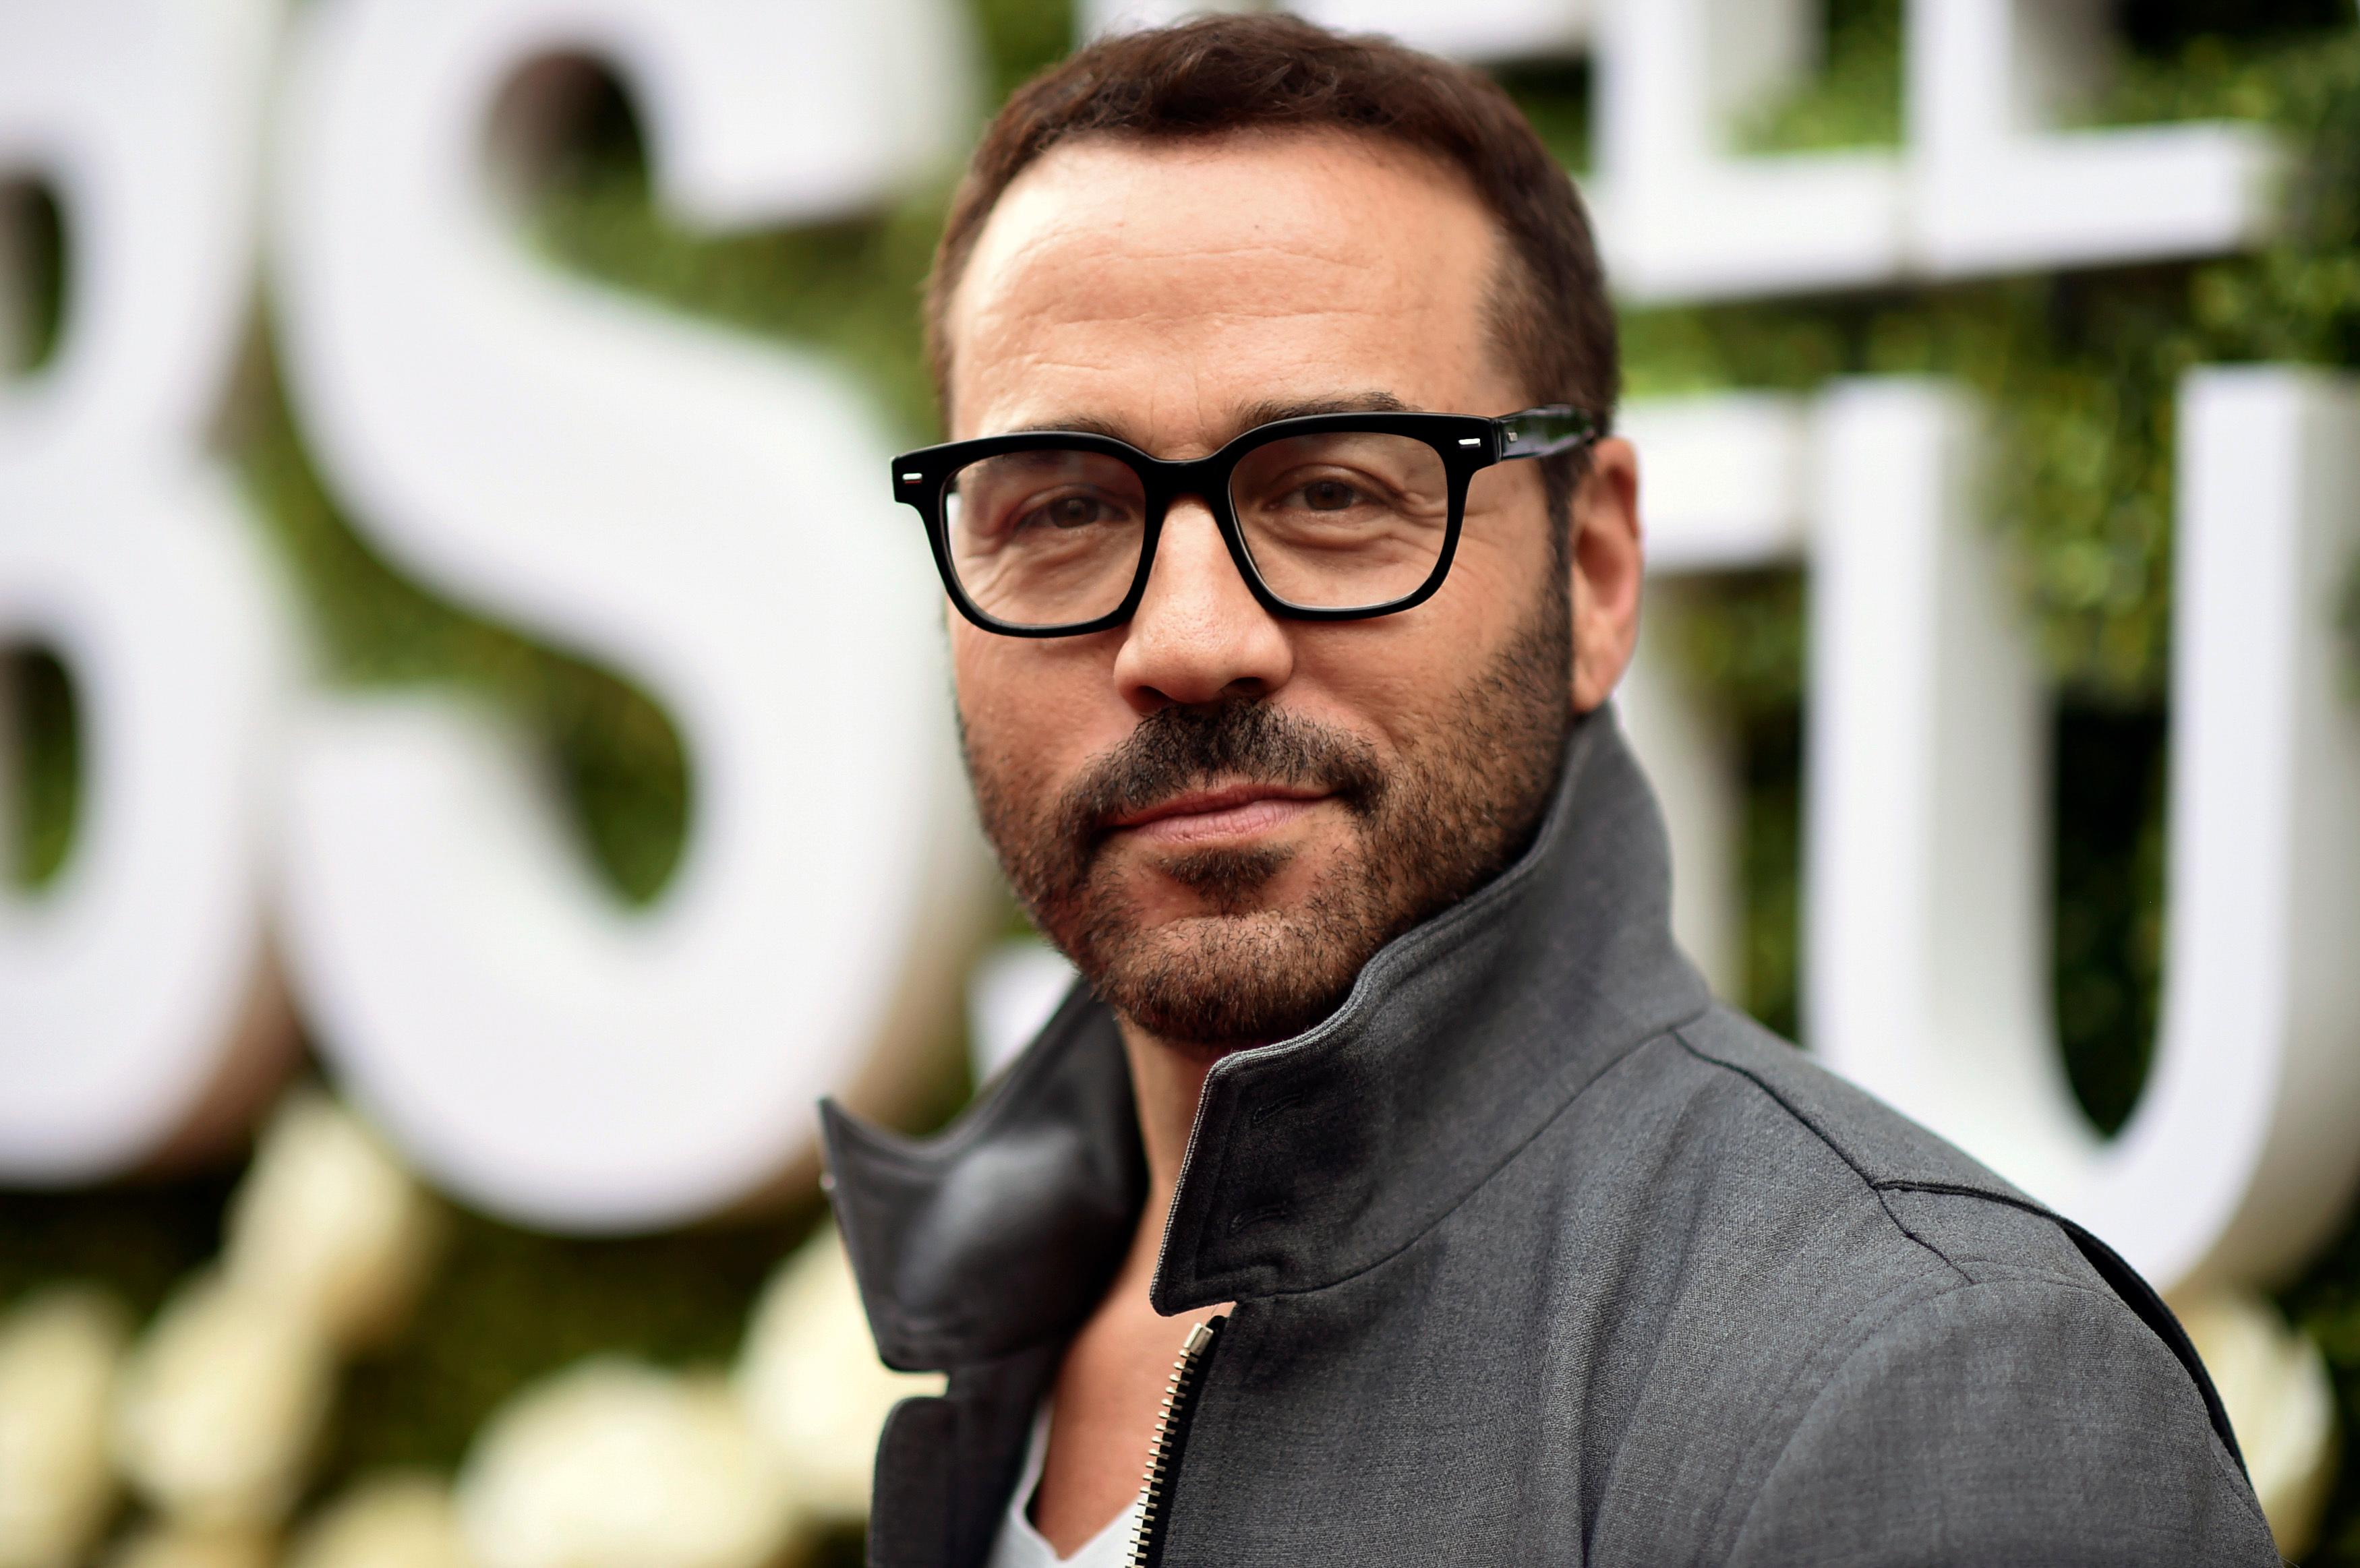 FILE - In this Aug. 1, 2017 file photo, Jeremy Piven attends the CBS Summer Soiree during the 2017 Summer TCA's in Studio City, Calif.{&amp;nbsp;} (Photo by Richard Shotwell/Invision/AP, File)<p></p>